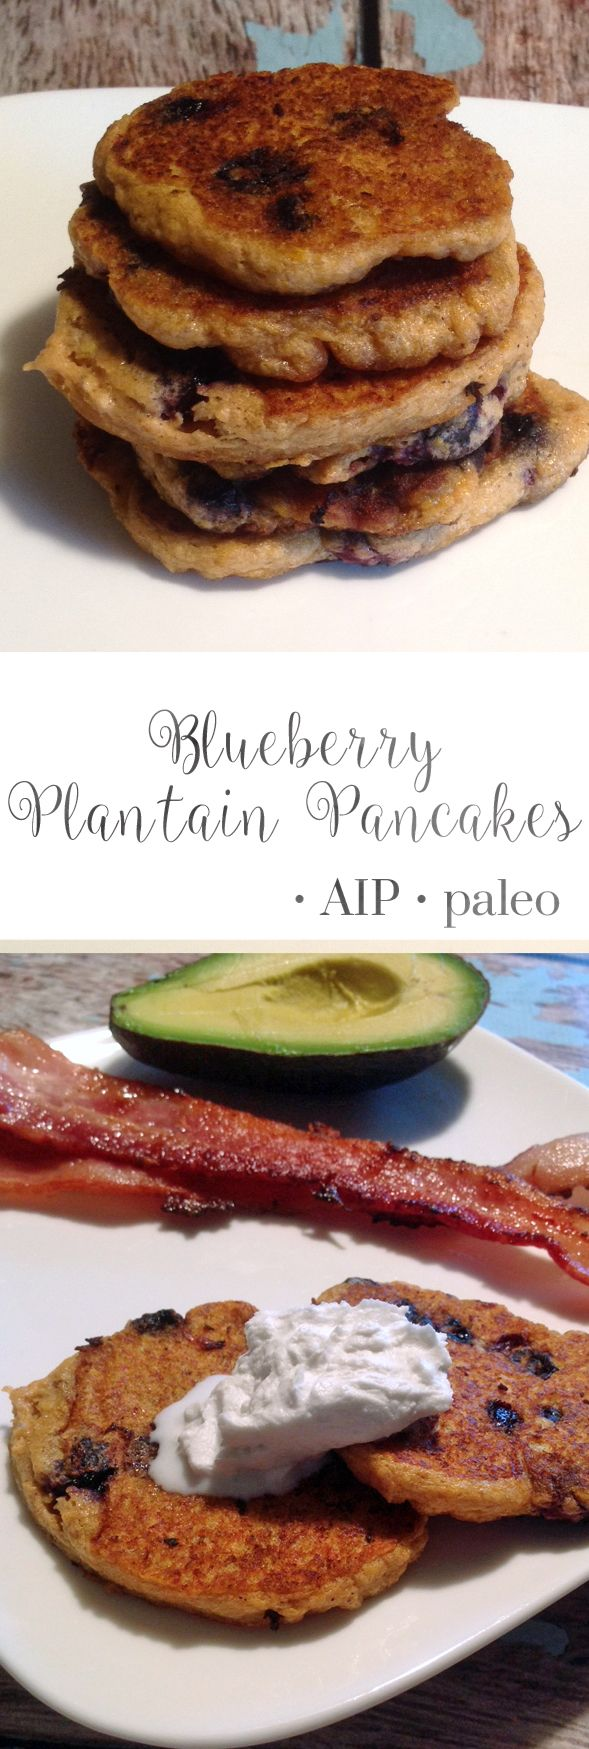 Blueberry Plantain Pancakes | Real Food & Love